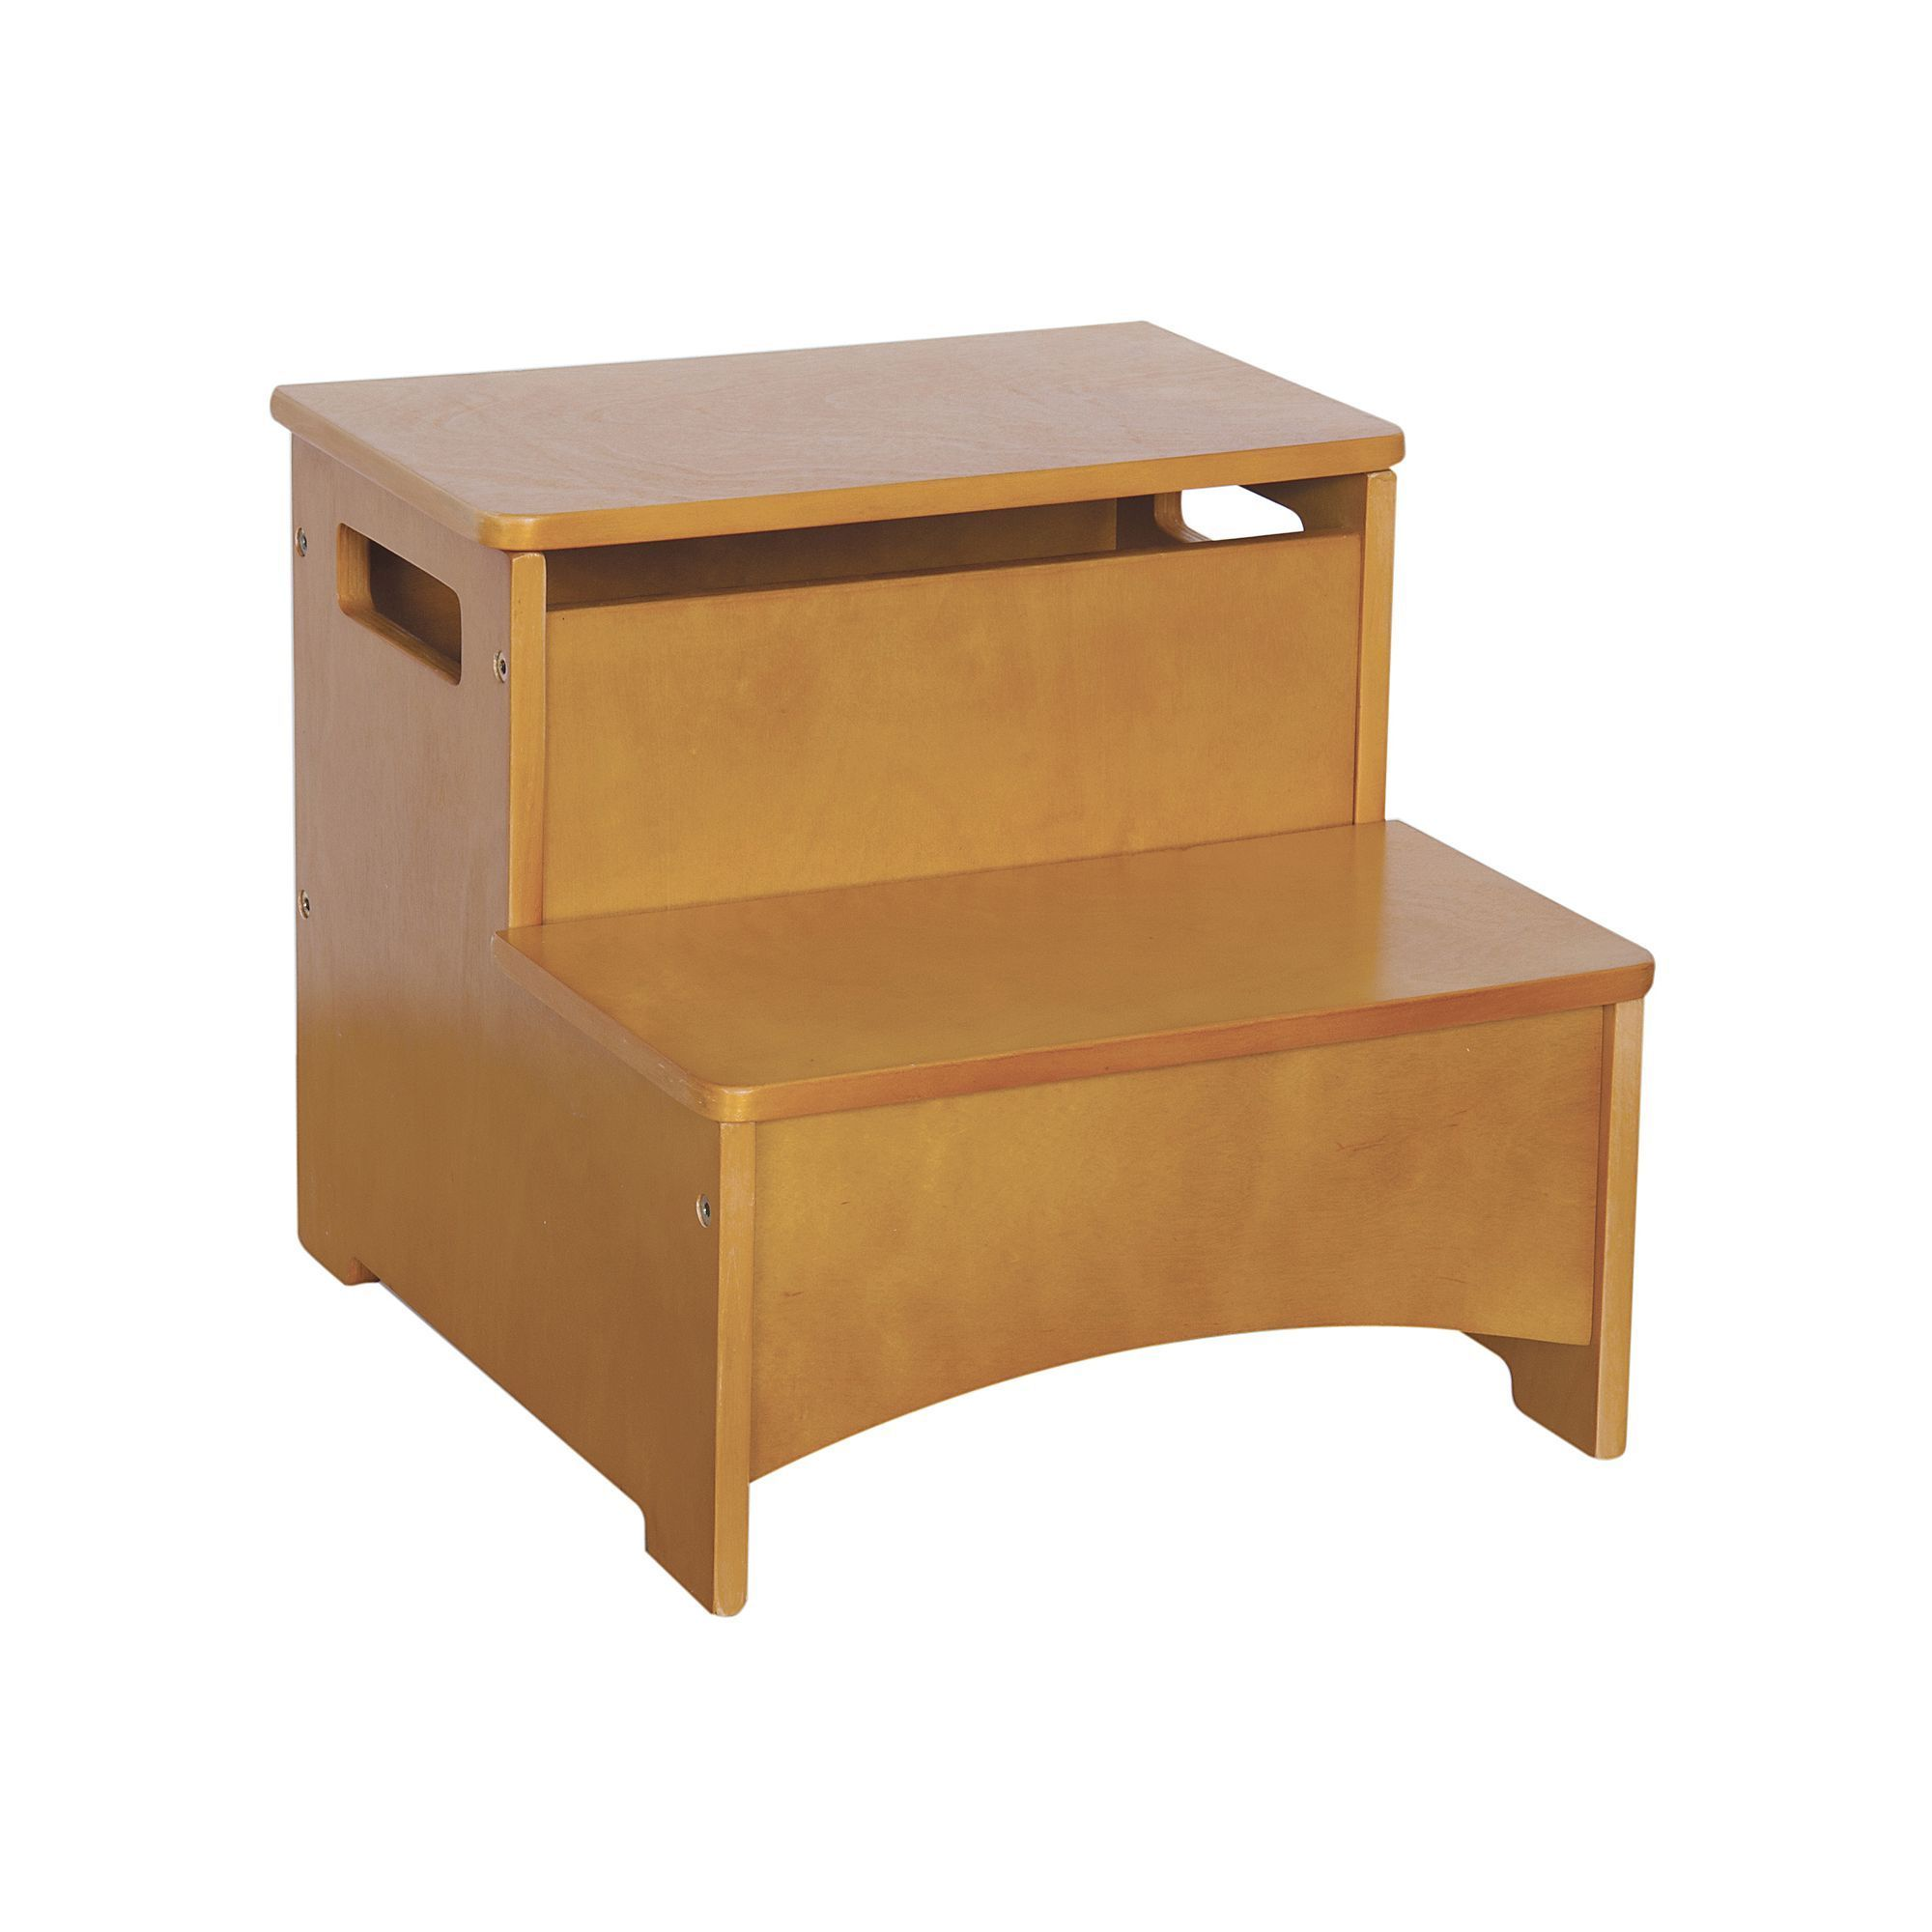 Stupendous Guidecraft New Mission Storage Step Up Multicolor Wood Camellatalisay Diy Chair Ideas Camellatalisaycom